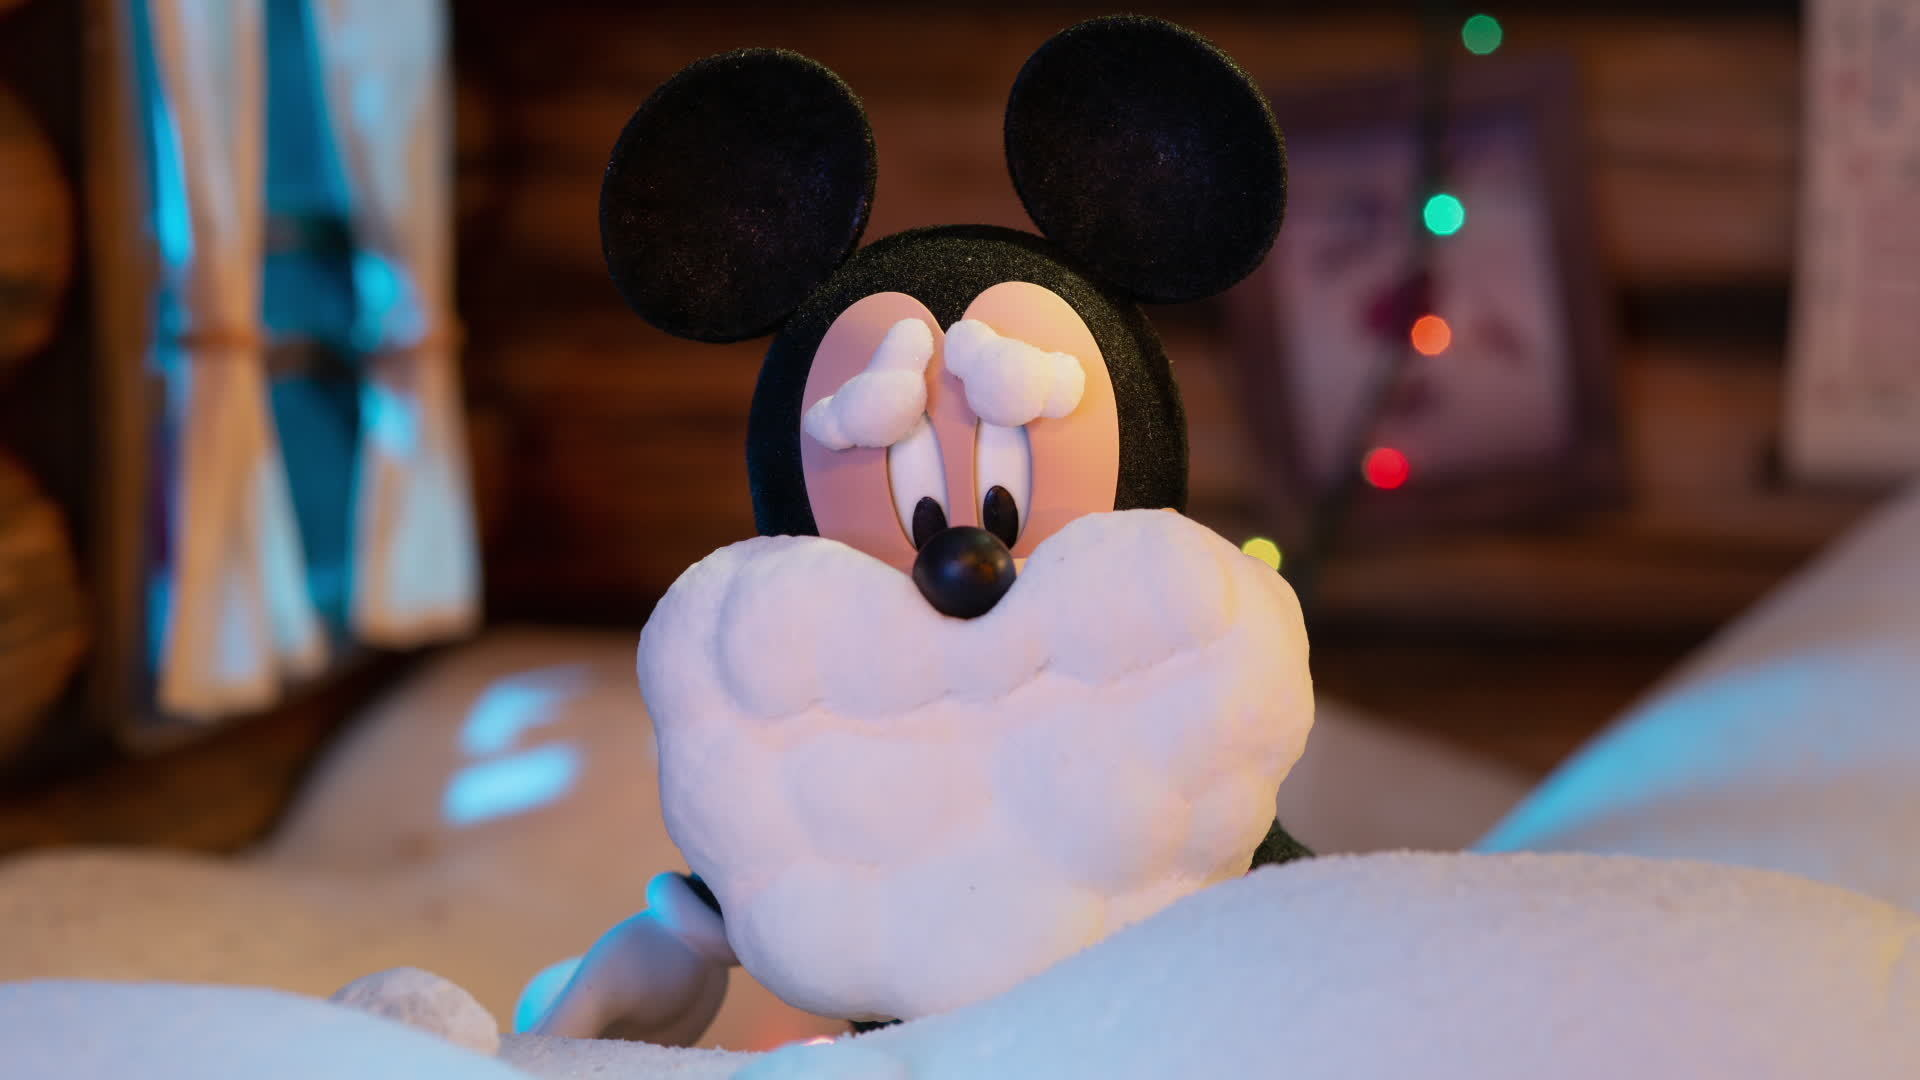 Mickey Mouse and the Magical Snowy Holiday